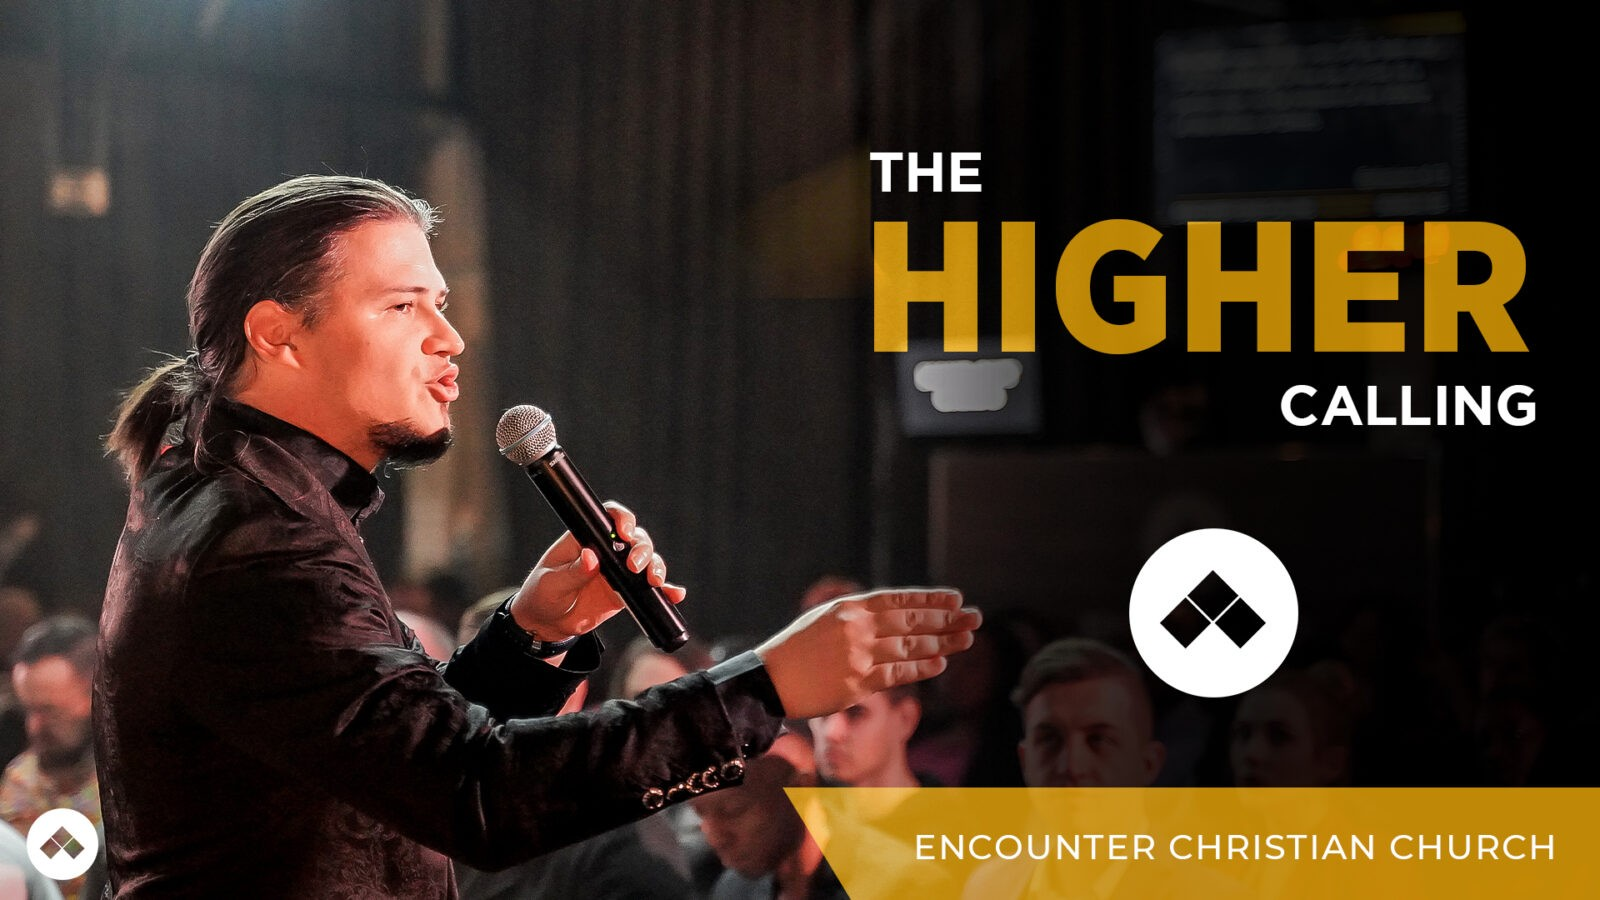 The Higher Calling